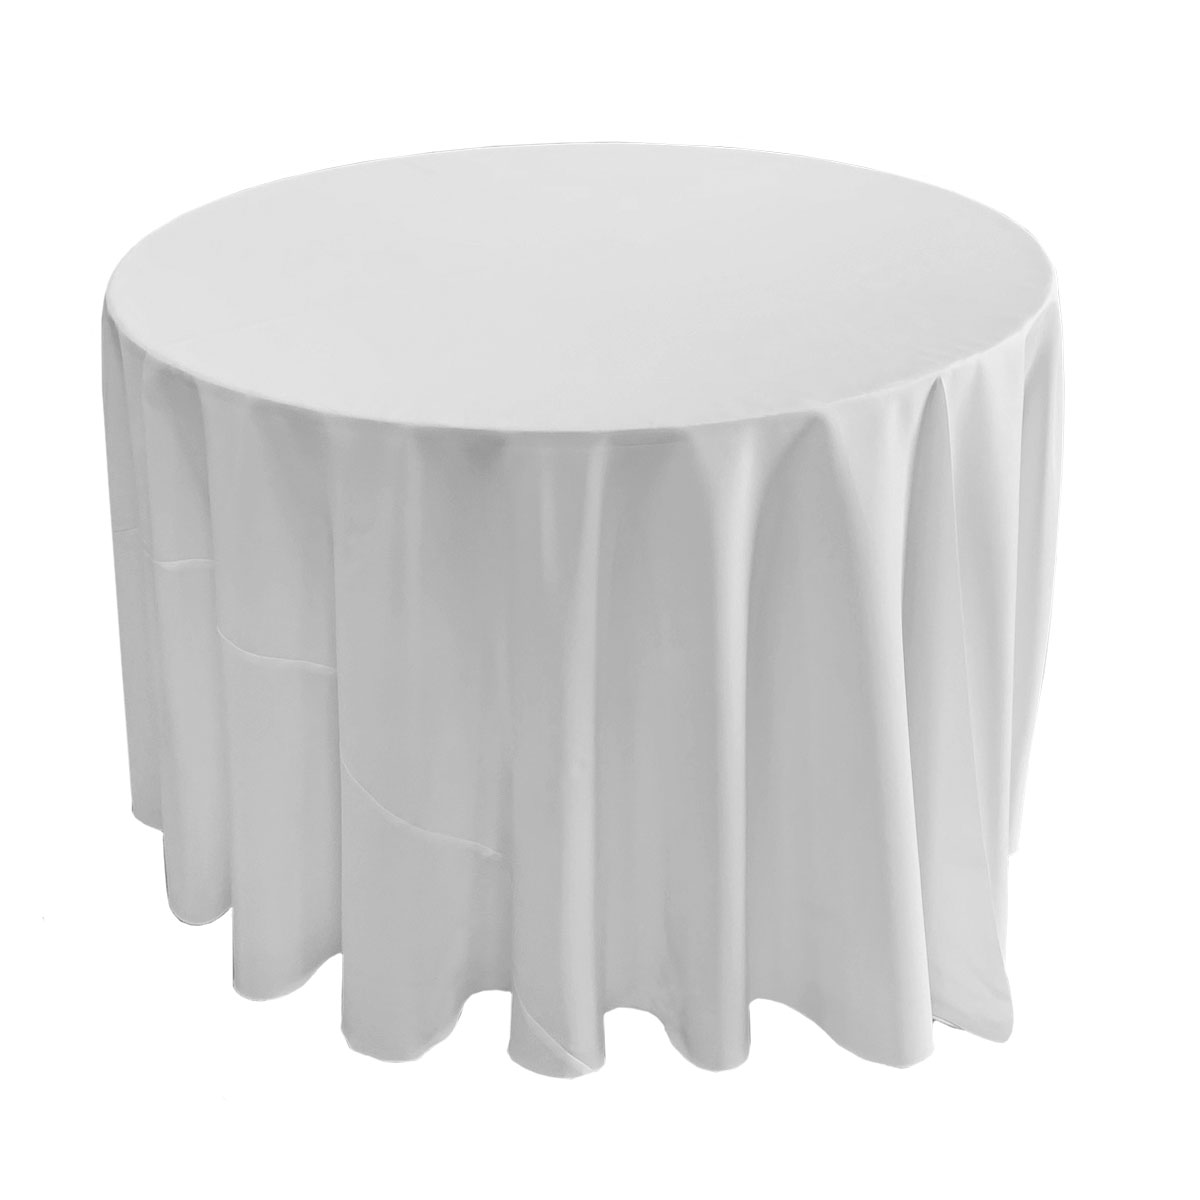 "114"" Round Solid White Tablecover On 48"" Round Table With Locking Wheels"